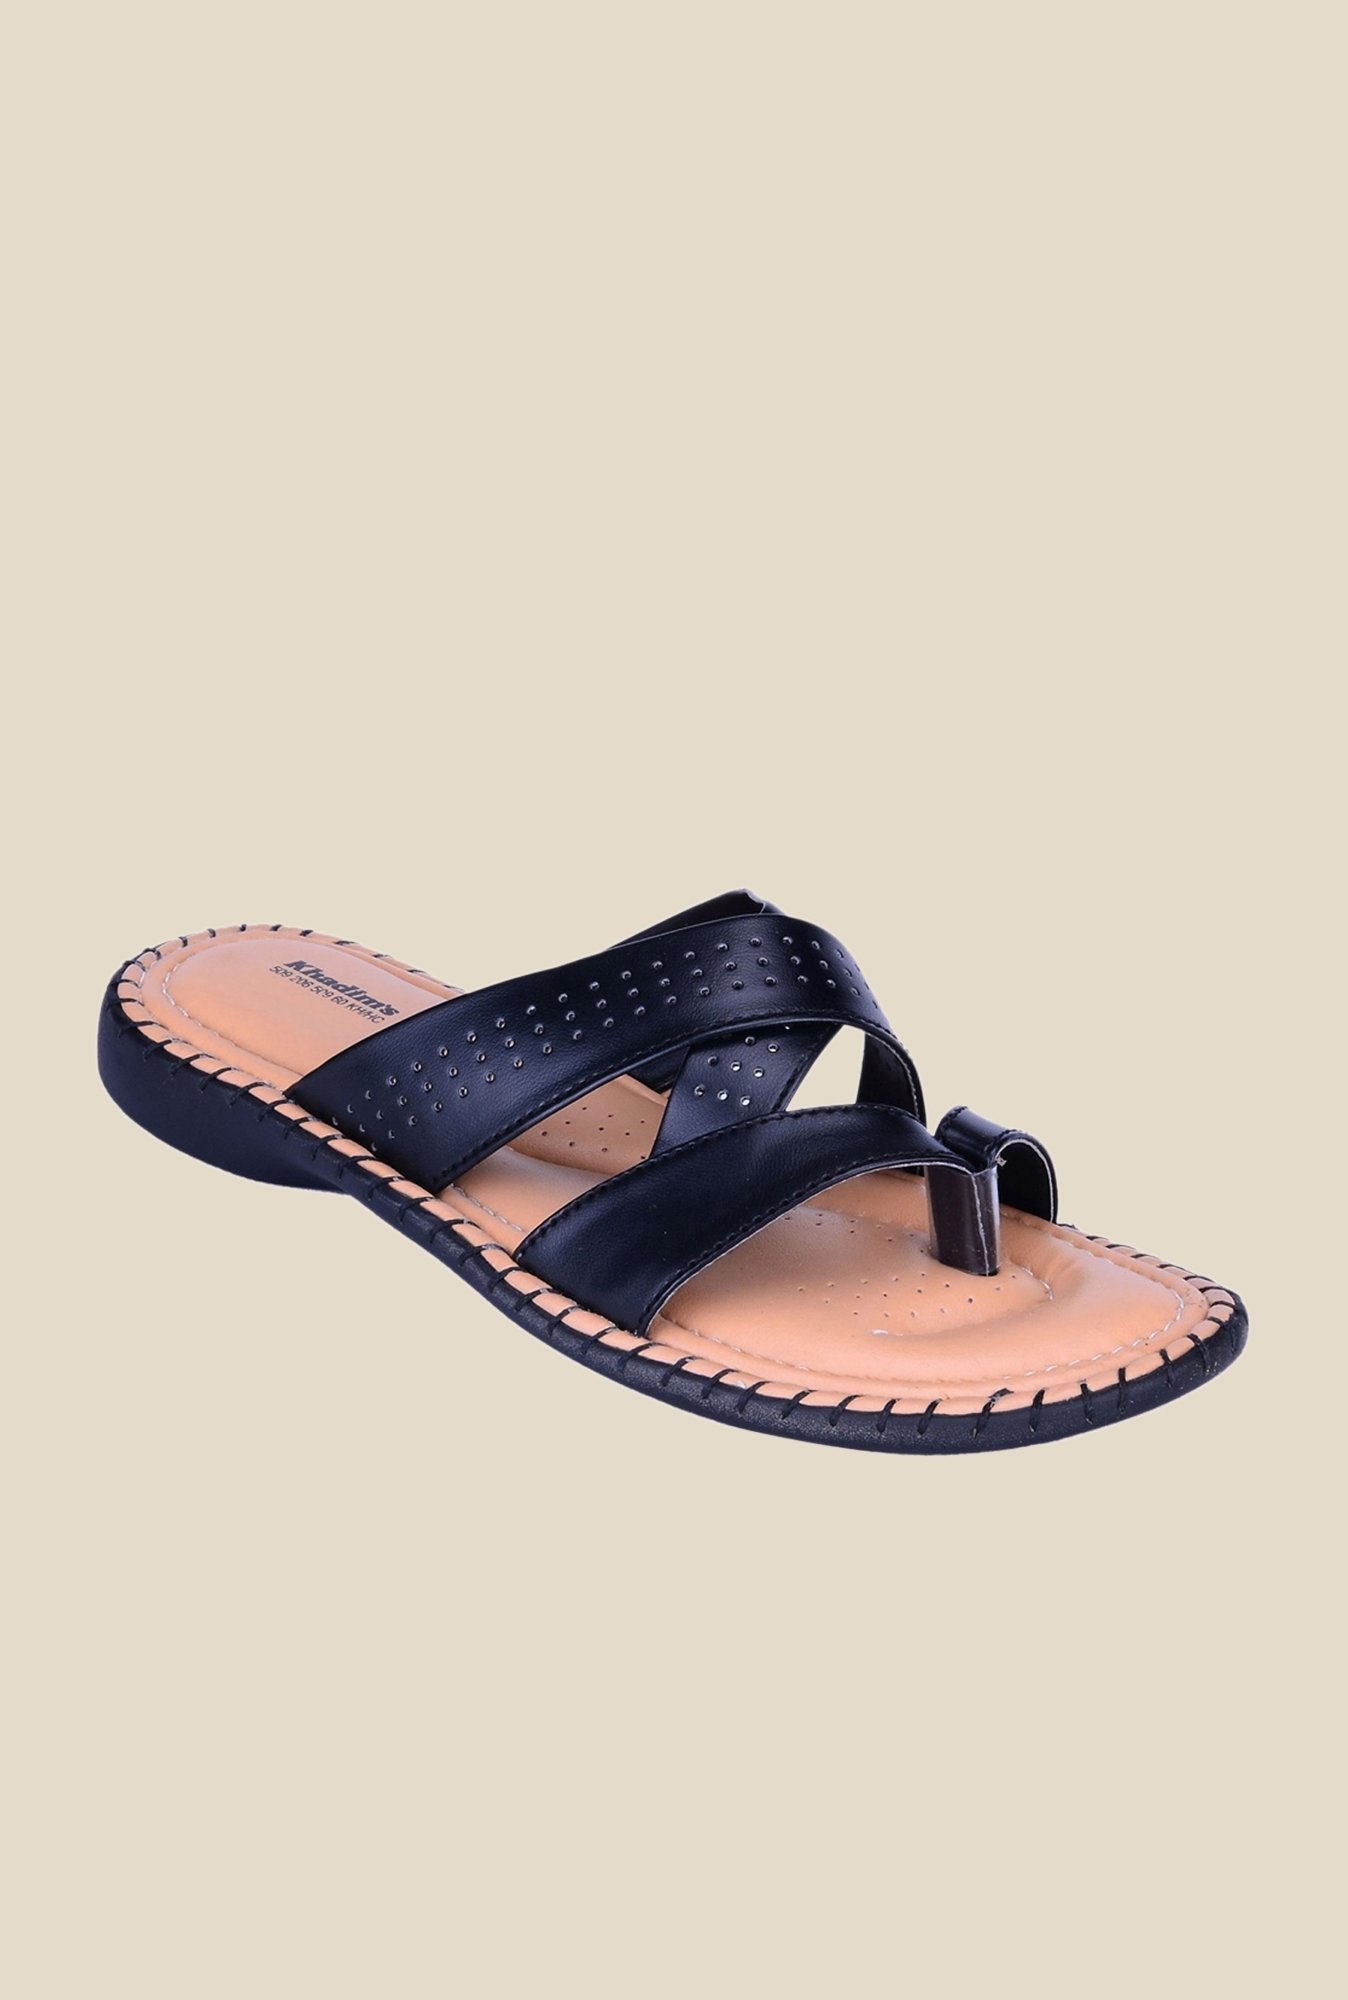 Khadim's Black Slide Sandals